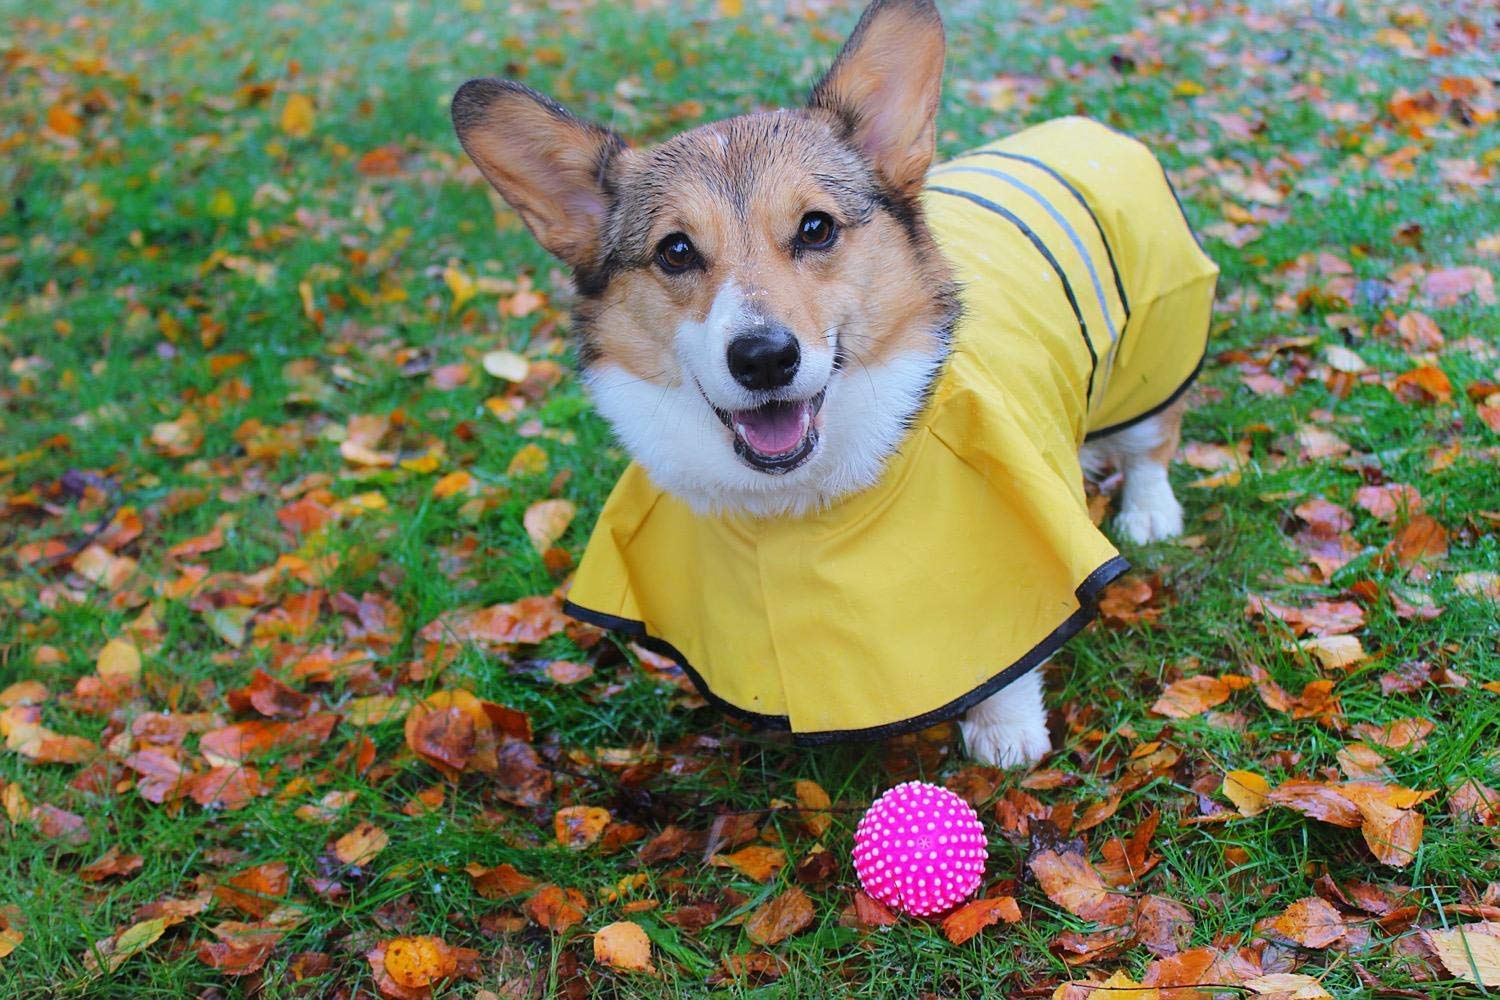 WarmHeaven Cute Dog Hooded Rain Poncho Adjustable and Reflective for Small Medium Large Puppy Breed Yellow Neck:16.5'' Length:18.9''